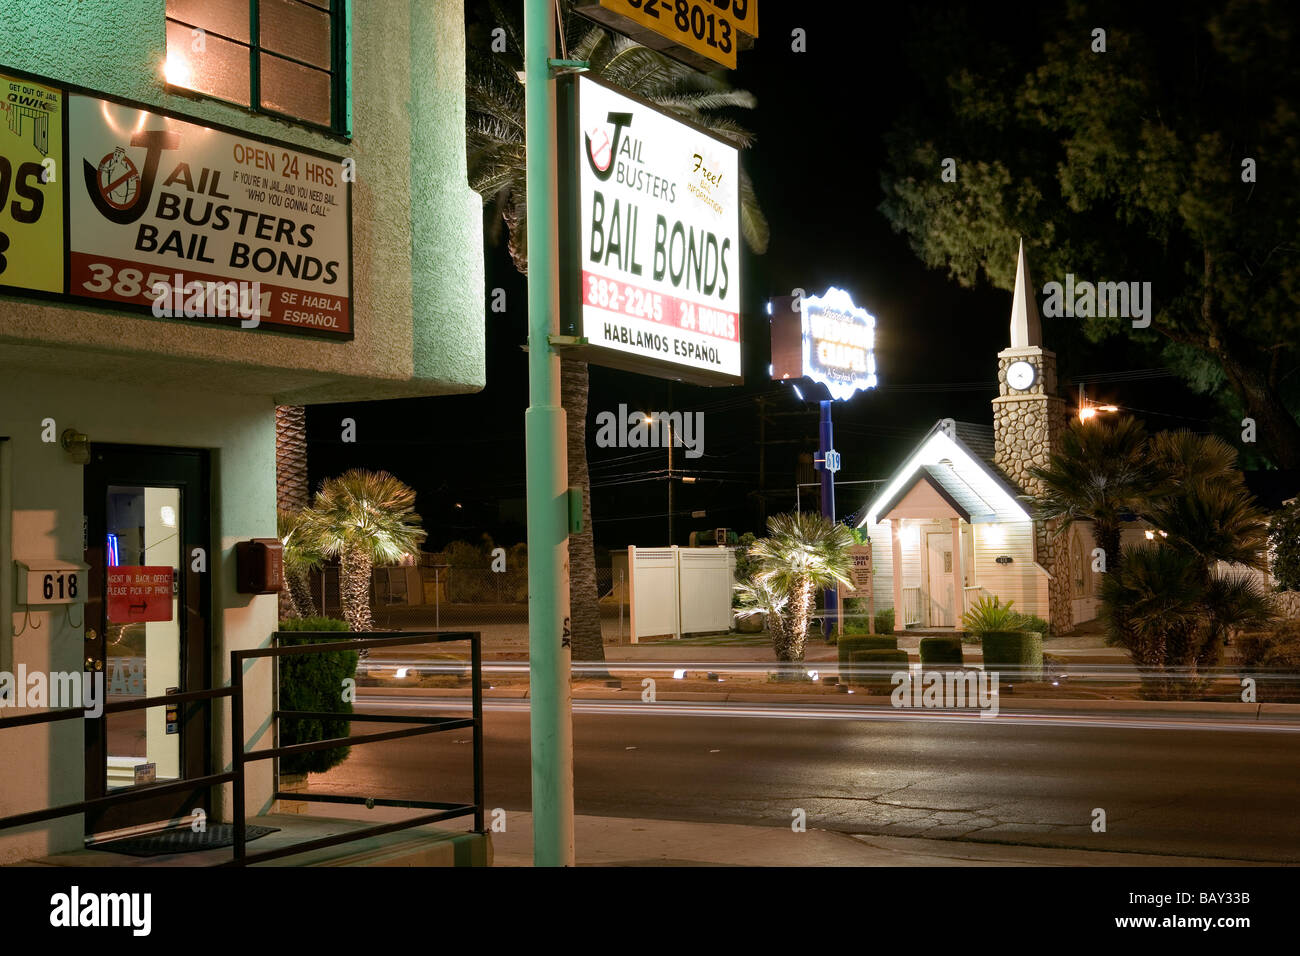 Las Vegas Boulevard The Strip Graceland Wedding Chapel And Jail Busters Downtown Nevada USA